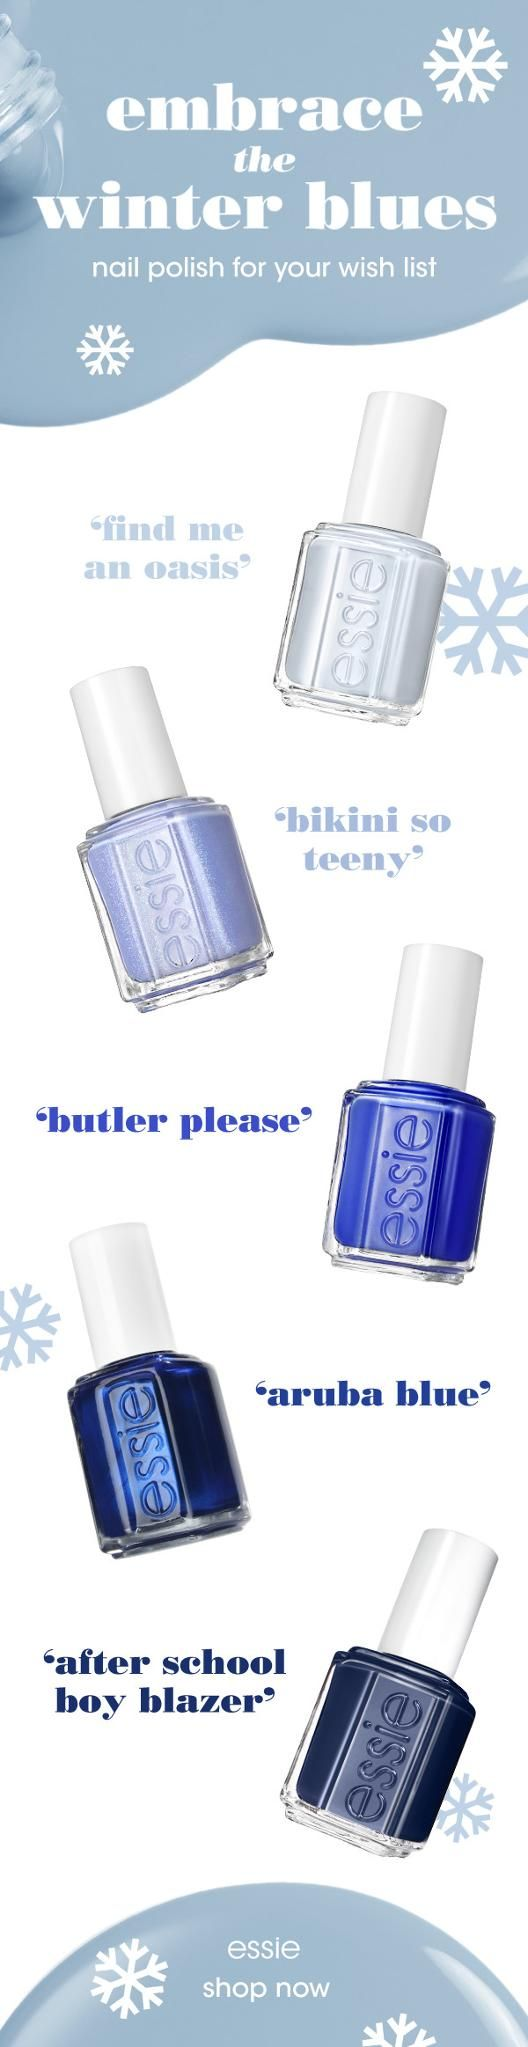 embrace the winter blues with these perfect nail colors from essie! from the icy baby blue 'find me an oasis' to the midnight shade 'after school boy blazer,' there's a winter blue nail polish for everyone. add these essie babes to your wishlist to get the ultimate winter mani! Shop now on essie.com